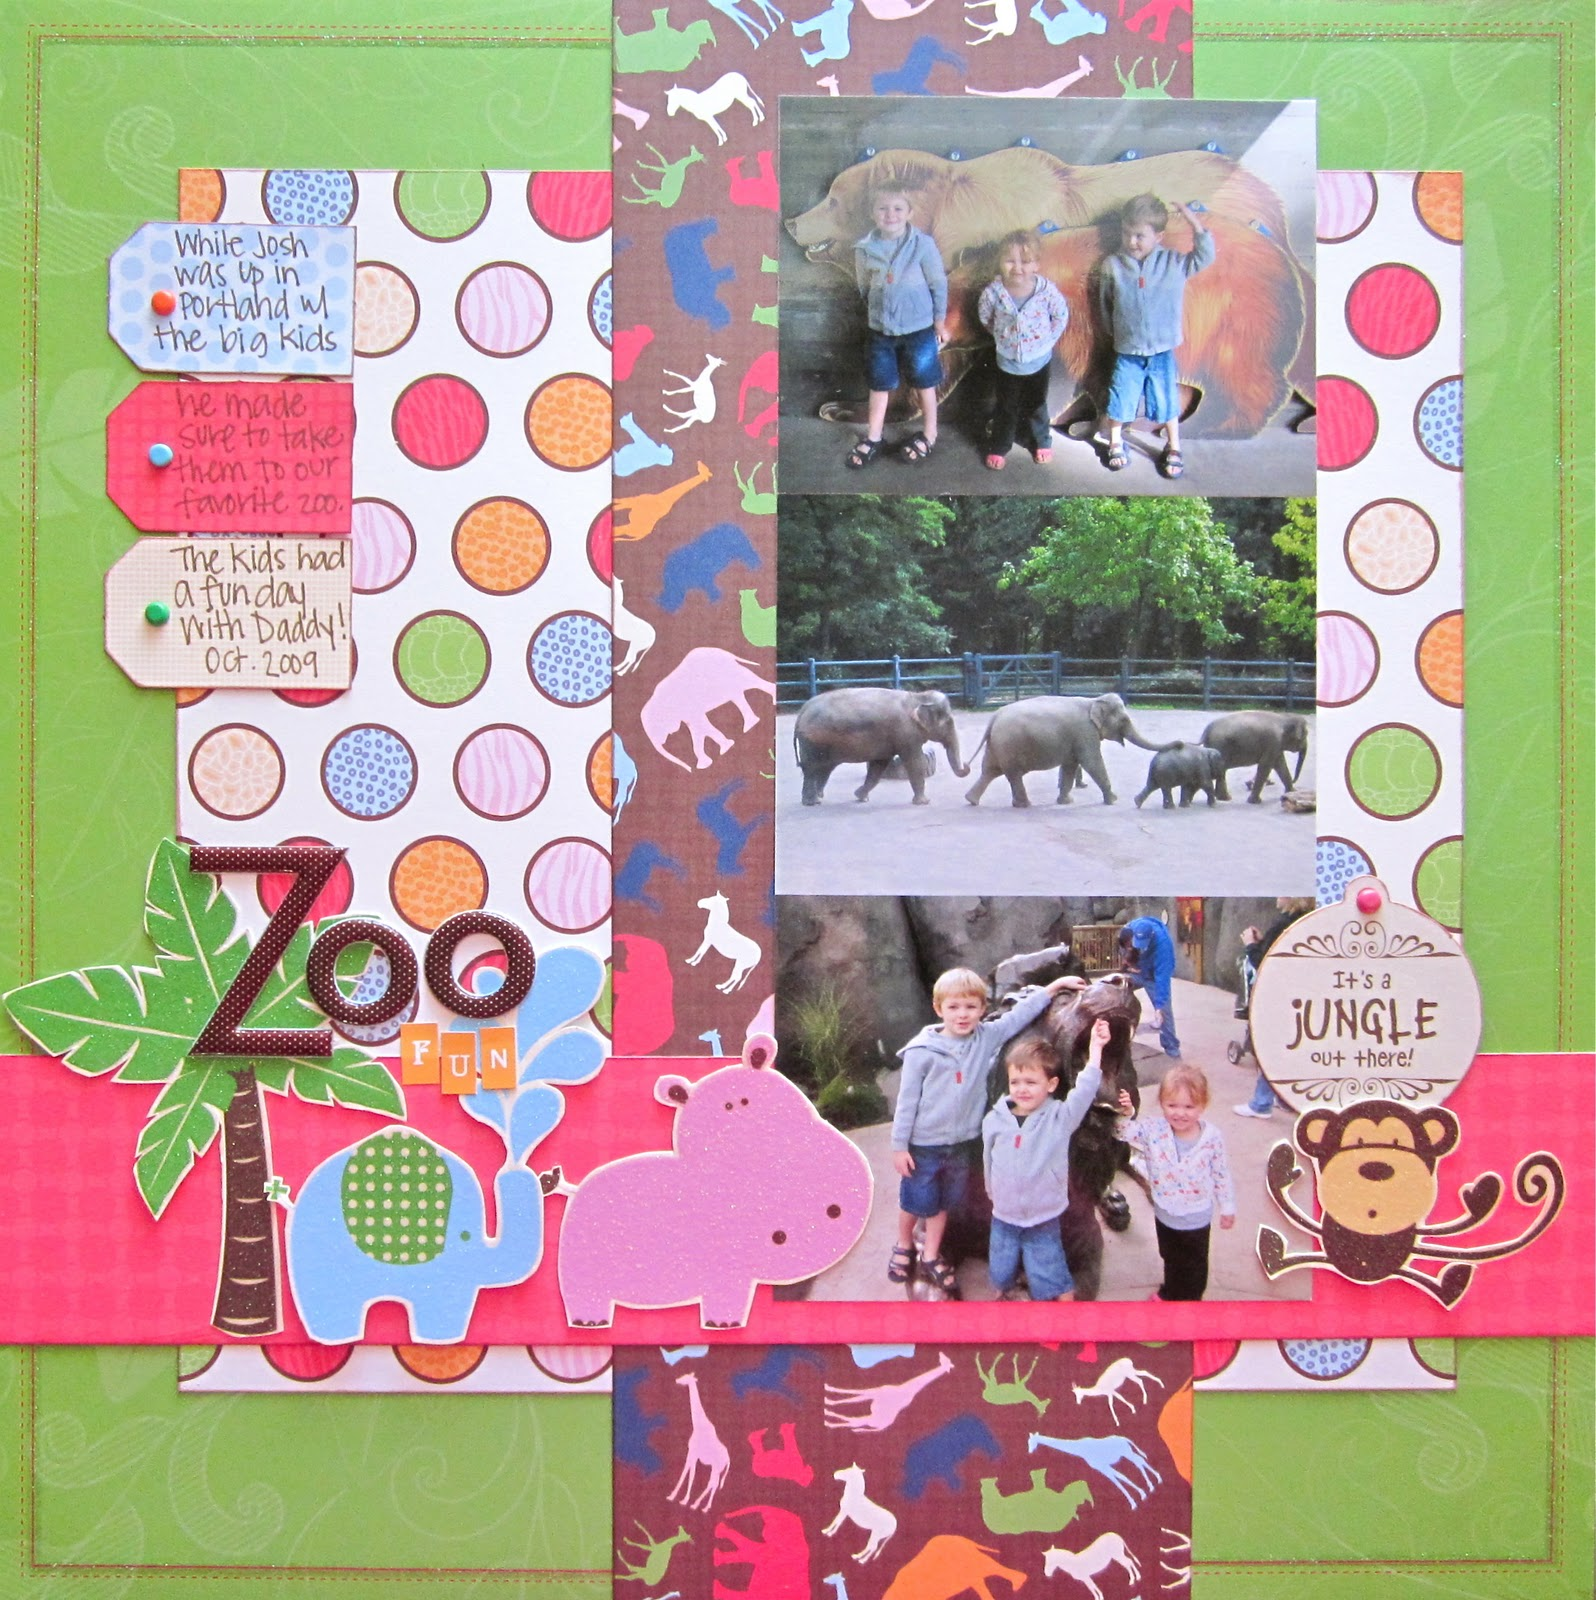 Jungle scrapbook ideas -  Zoo Oregon Zoo When Josh Took The 3 Big Kids Up To Portland For His Race October 2008